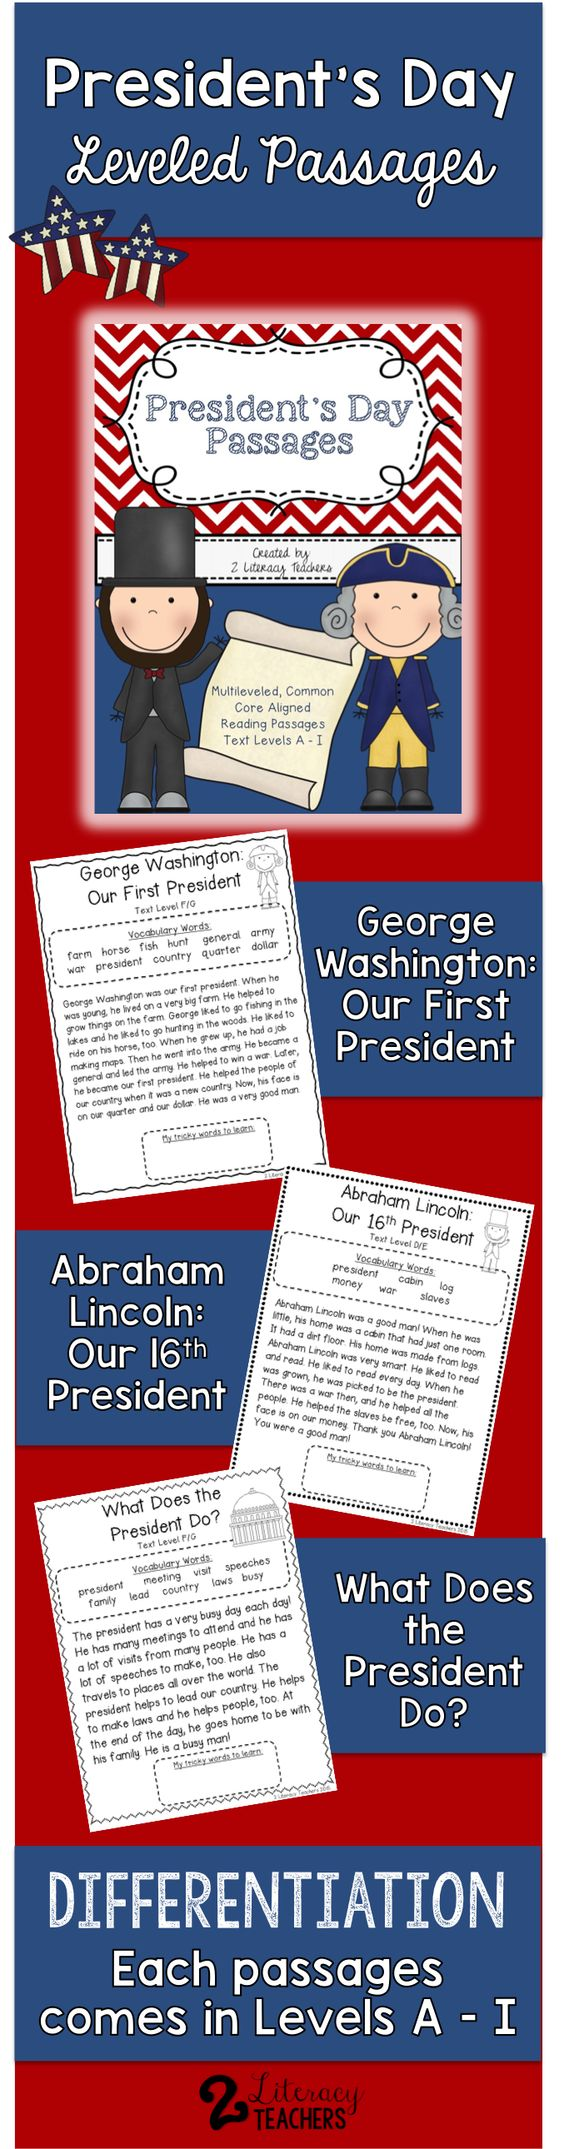 Worksheet Levelled Reading Passages presidents day ccss aligned leveled reading passages and perfect for differentiation use guided partner work